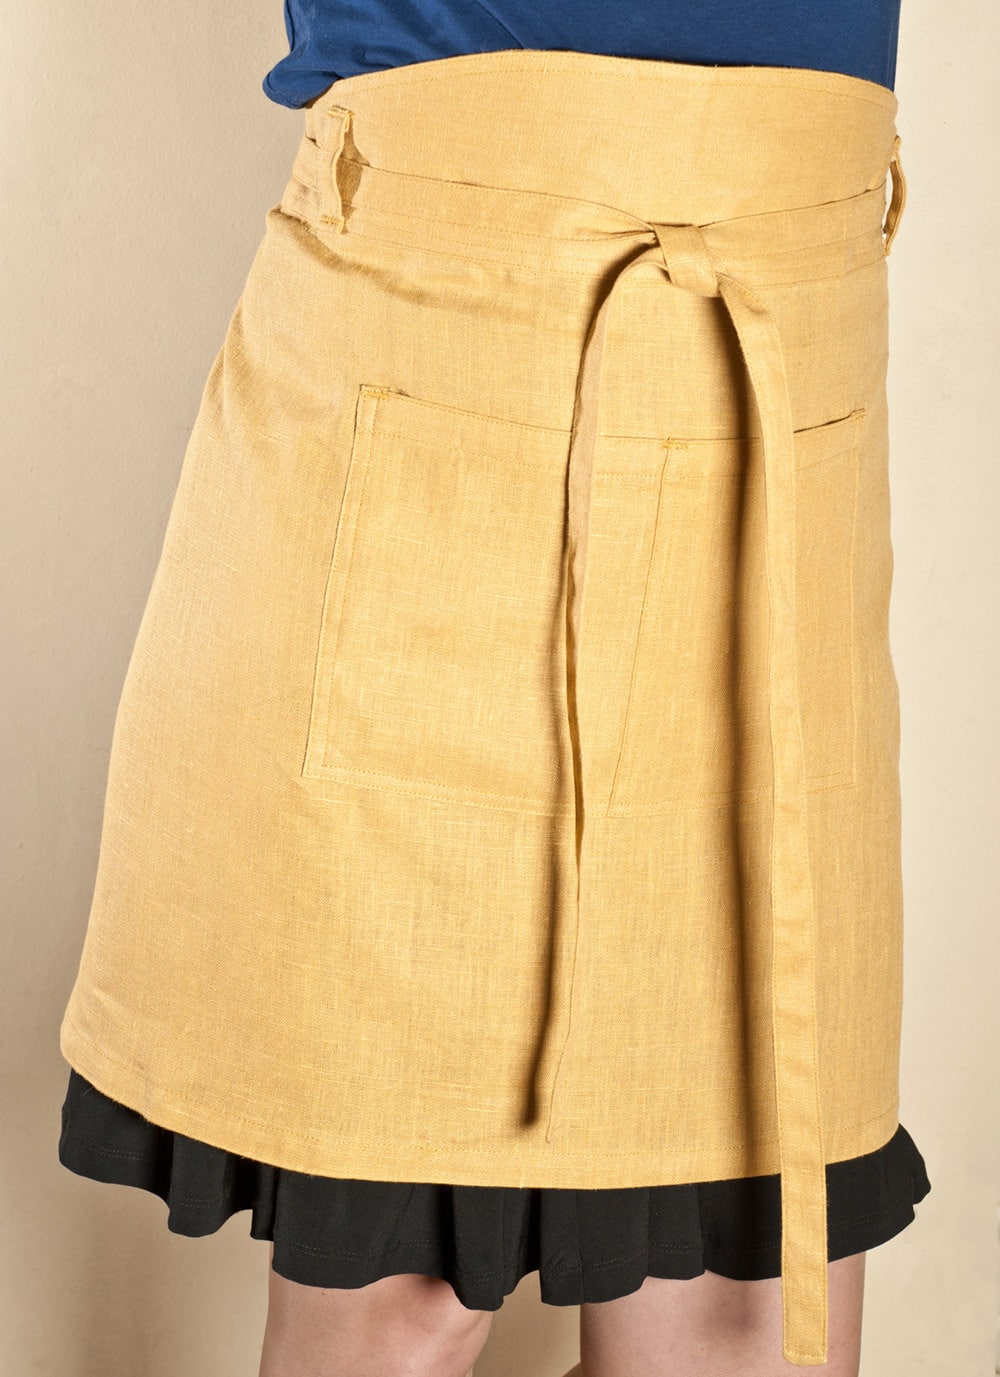 Yellow Linen Half Apron via Etsy